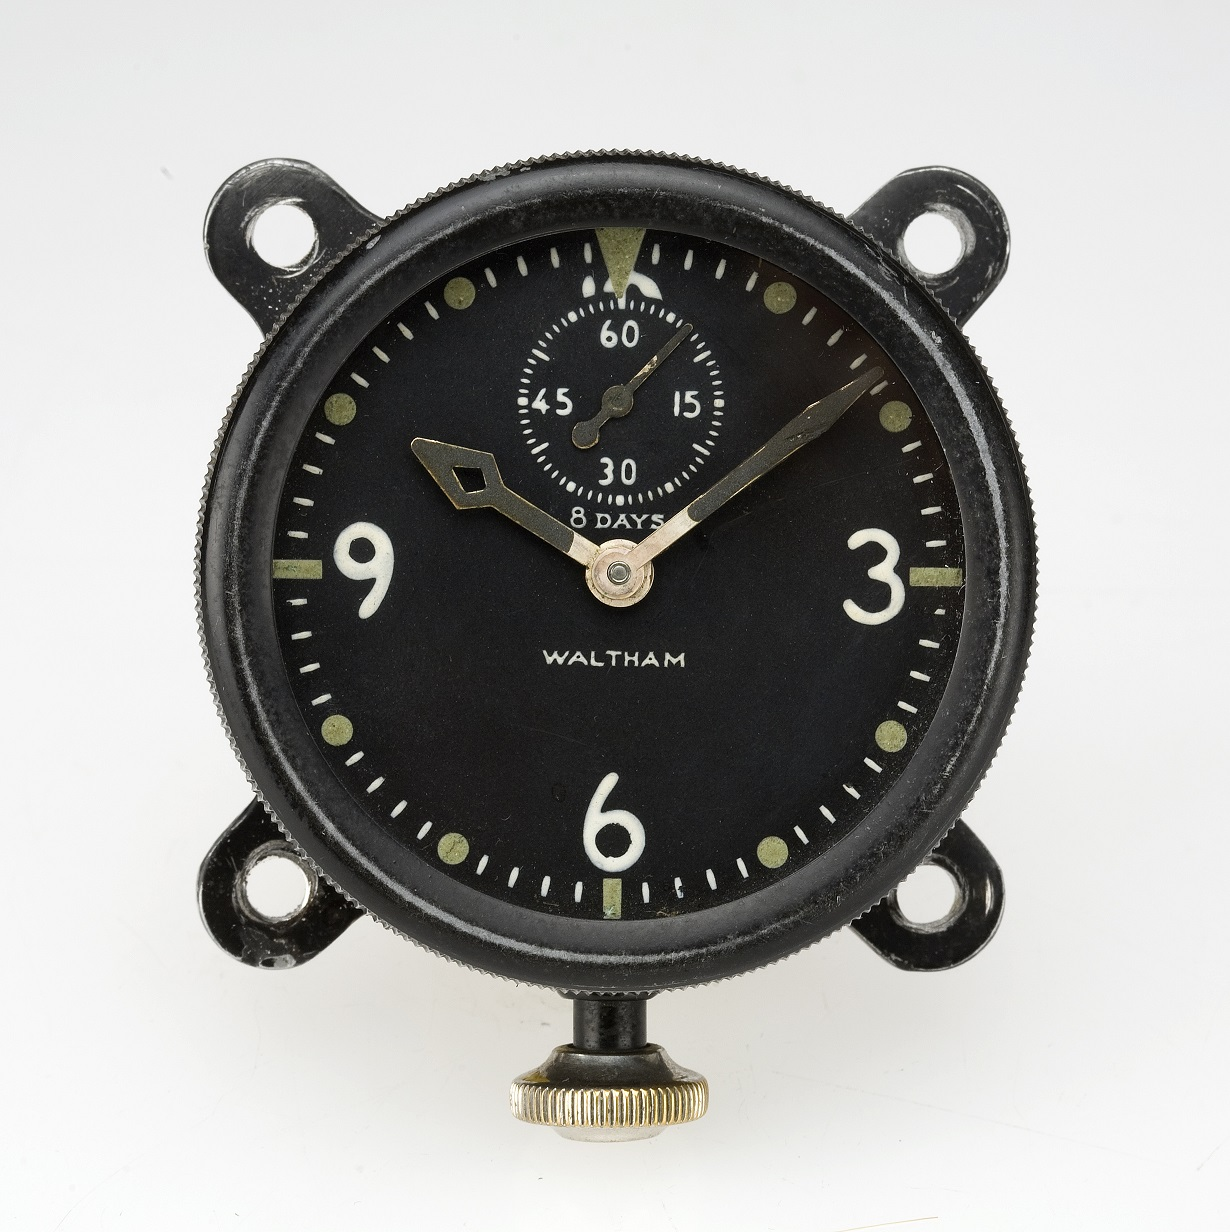 Waltham Watch XA 37 Type, Swiss Watch, Classic Design, Black Colour